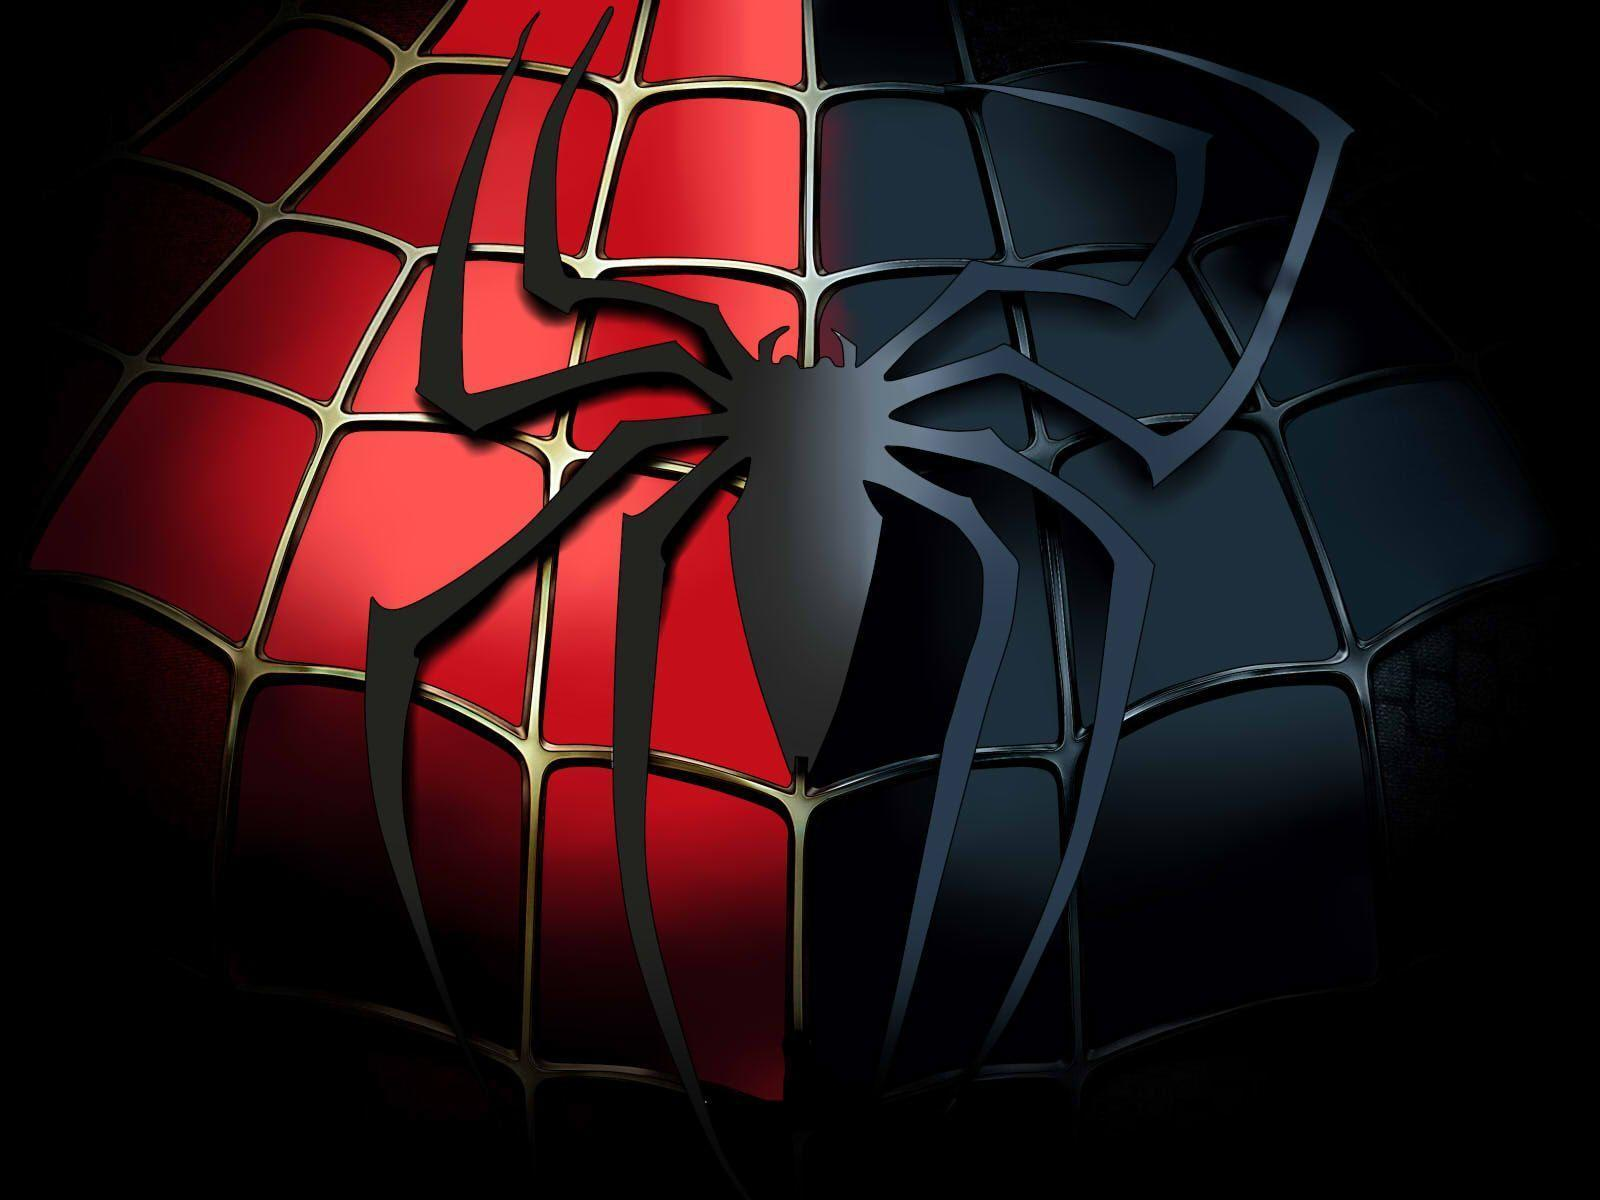 Spiderman logo clipart mobile